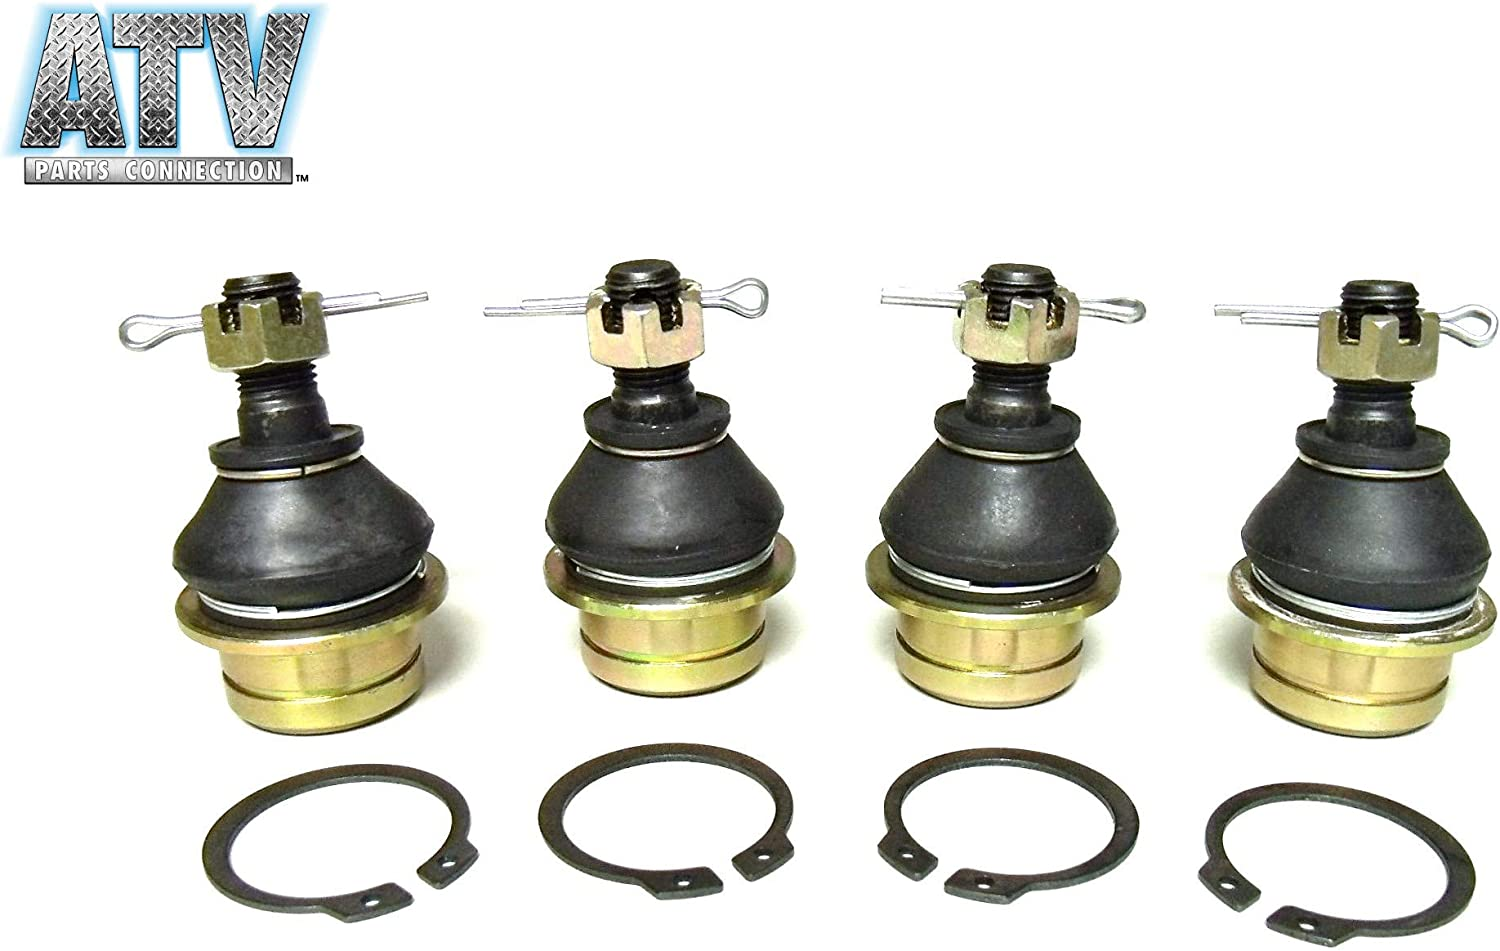 Complete Ball Joint Lower and Upper Kit for Suzuki LTA-450 X King Quad 2007-2010 All Balls